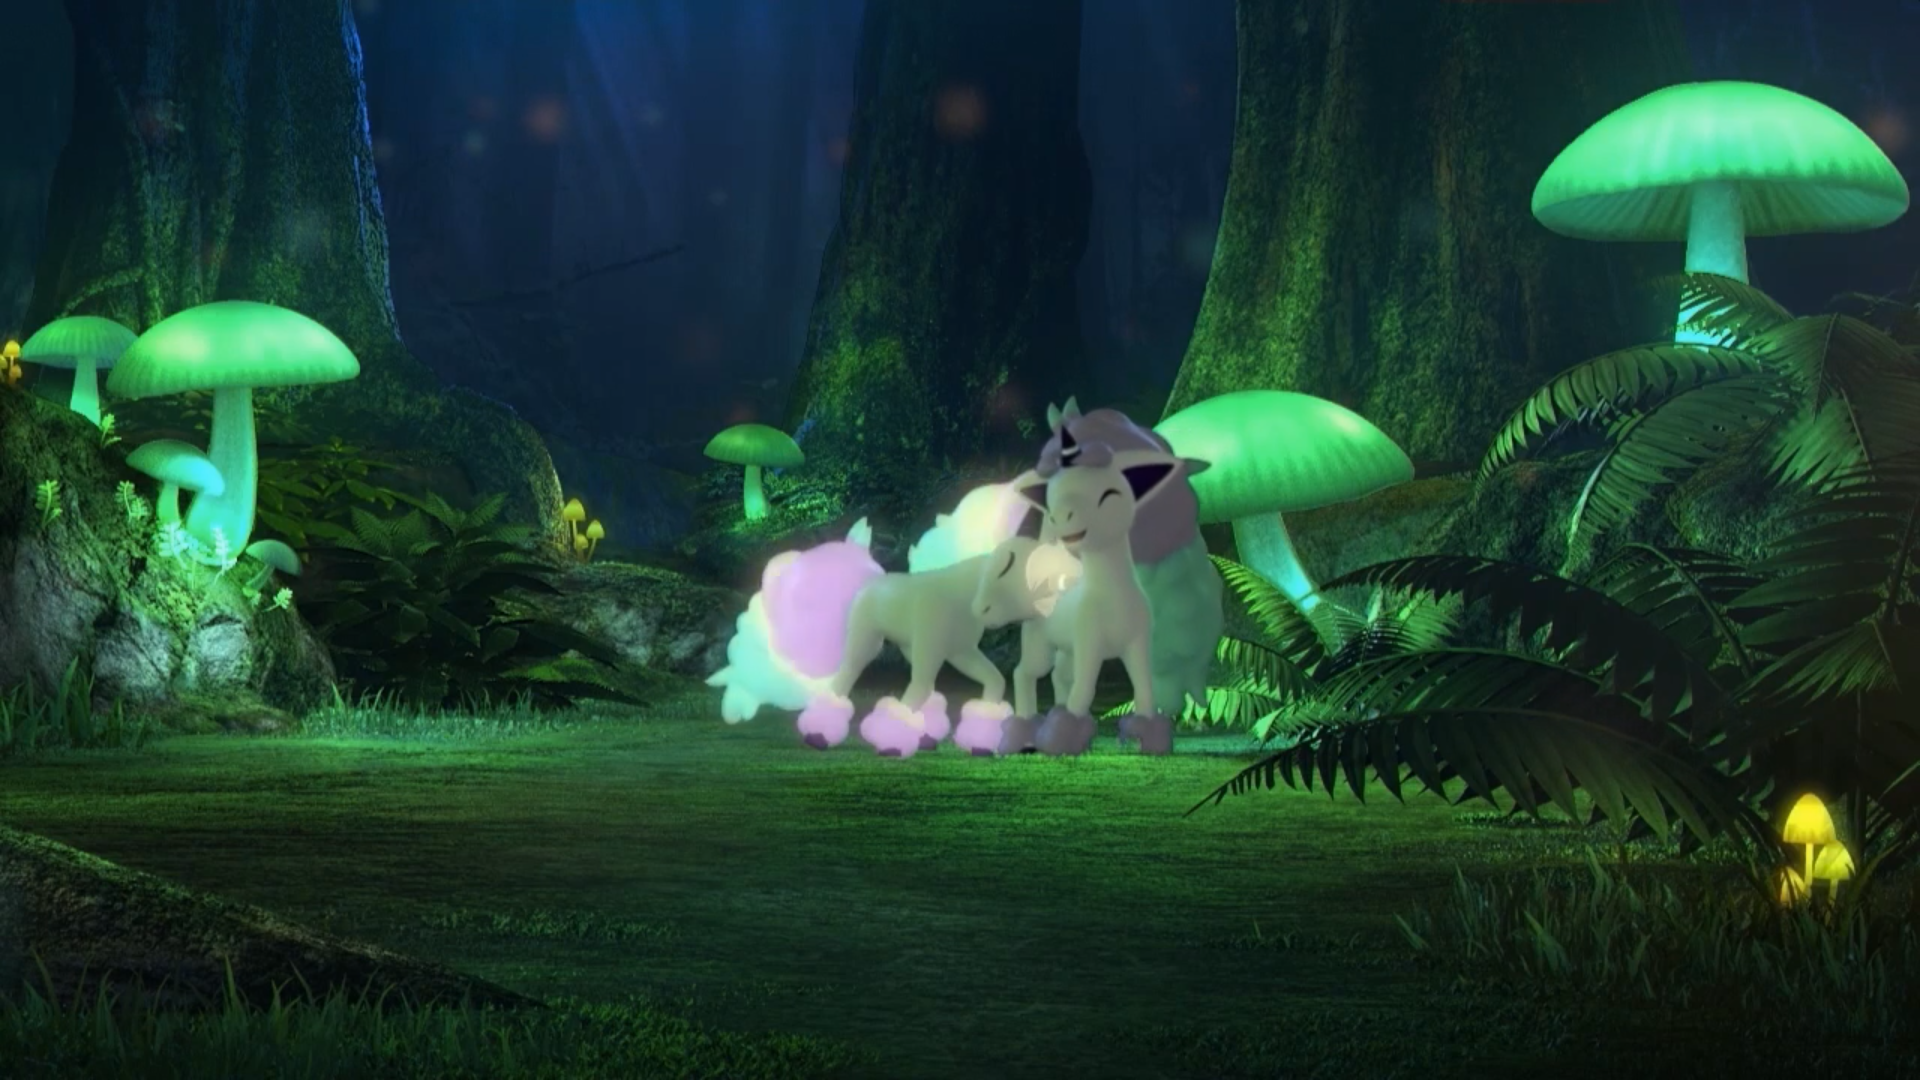 New Pokémon revealed in 24-hour Sword and Shield stream appears to be a Galarian Ponyta